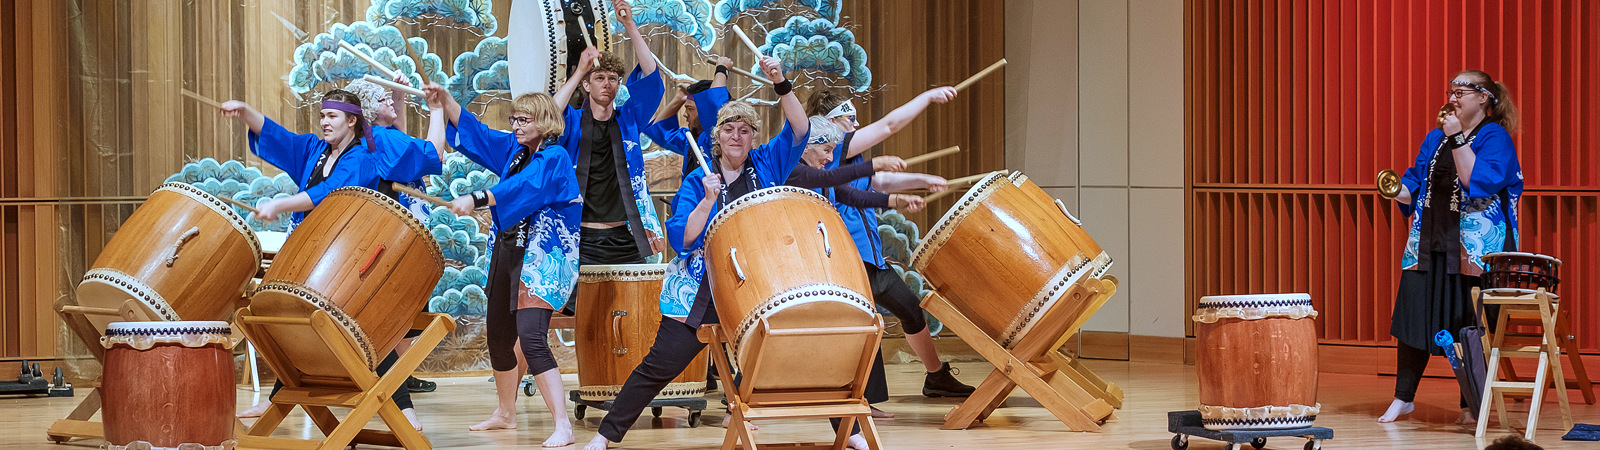 Fort Wayne Taiko drummers perform at the May 19 Cherry Blossom Festival celebrating Japanese culture. <span class=&apos;image-credits&apos;>By Ray Steup</span>